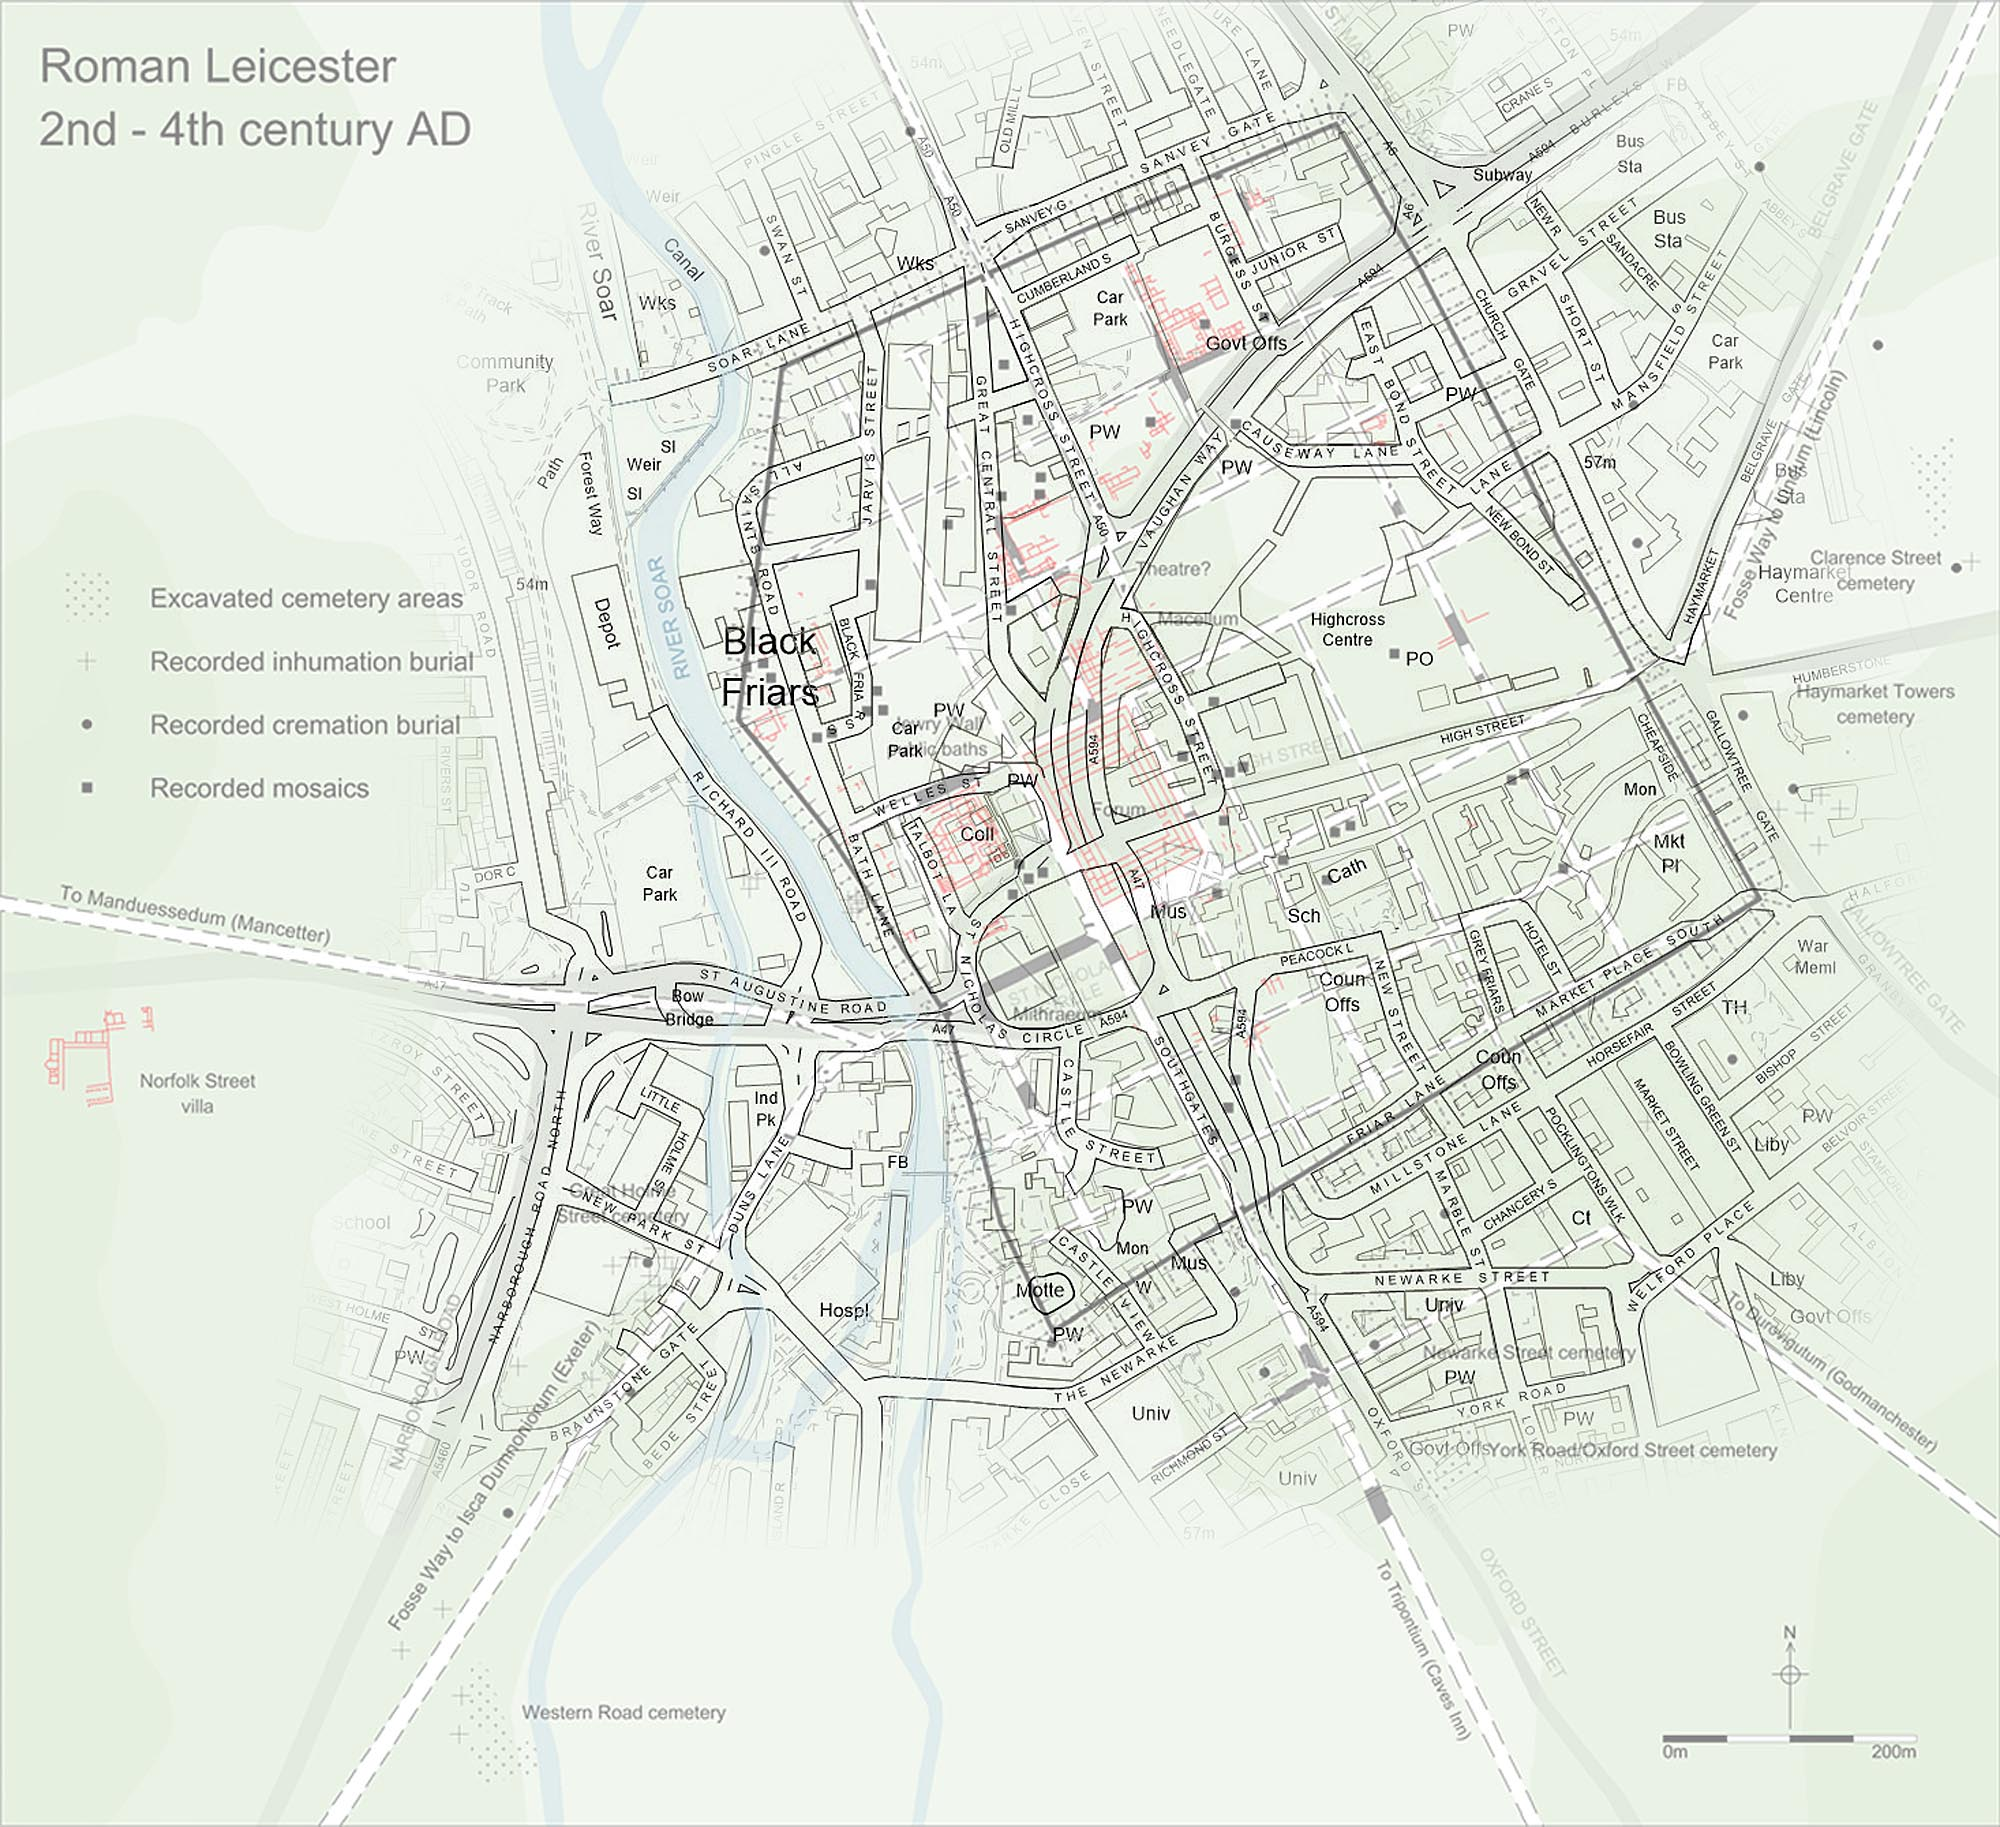 Plan of Roman Leicester with modern road overlay - University of Leicester Archaeological Services